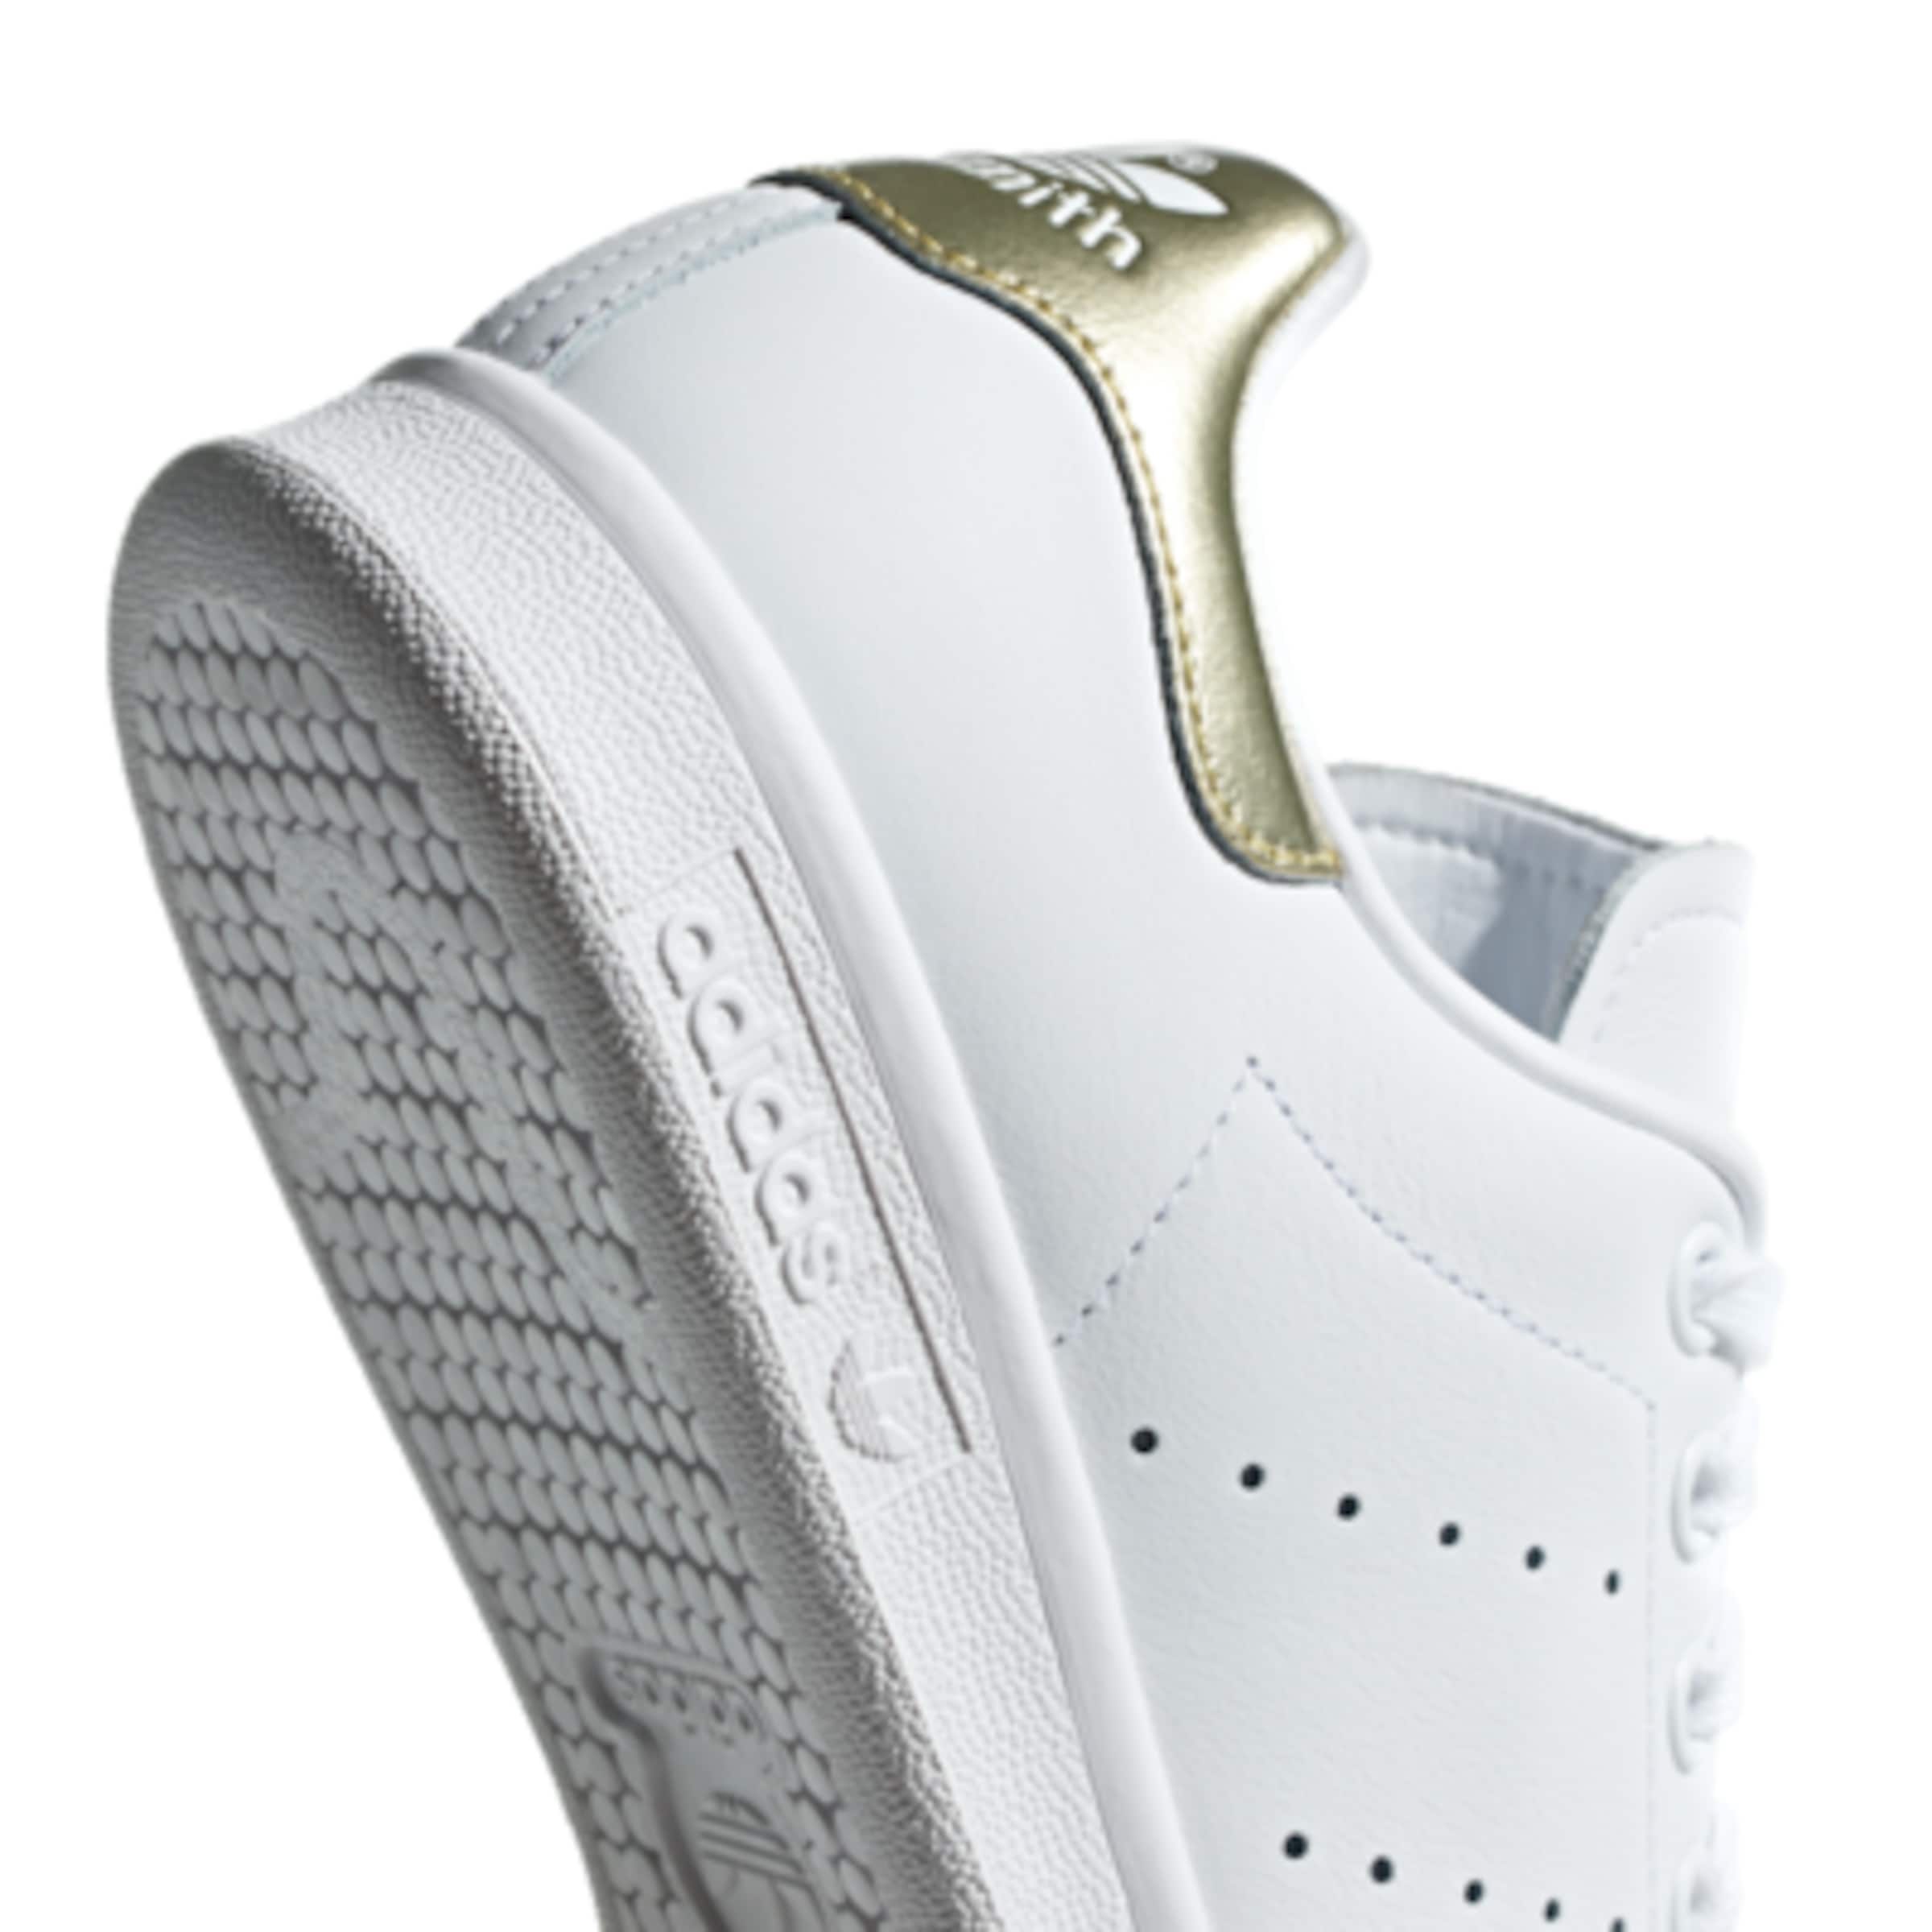 En Originals Basses 'stan OrBlanc Smith' Adidas Baskets y6gfYb7